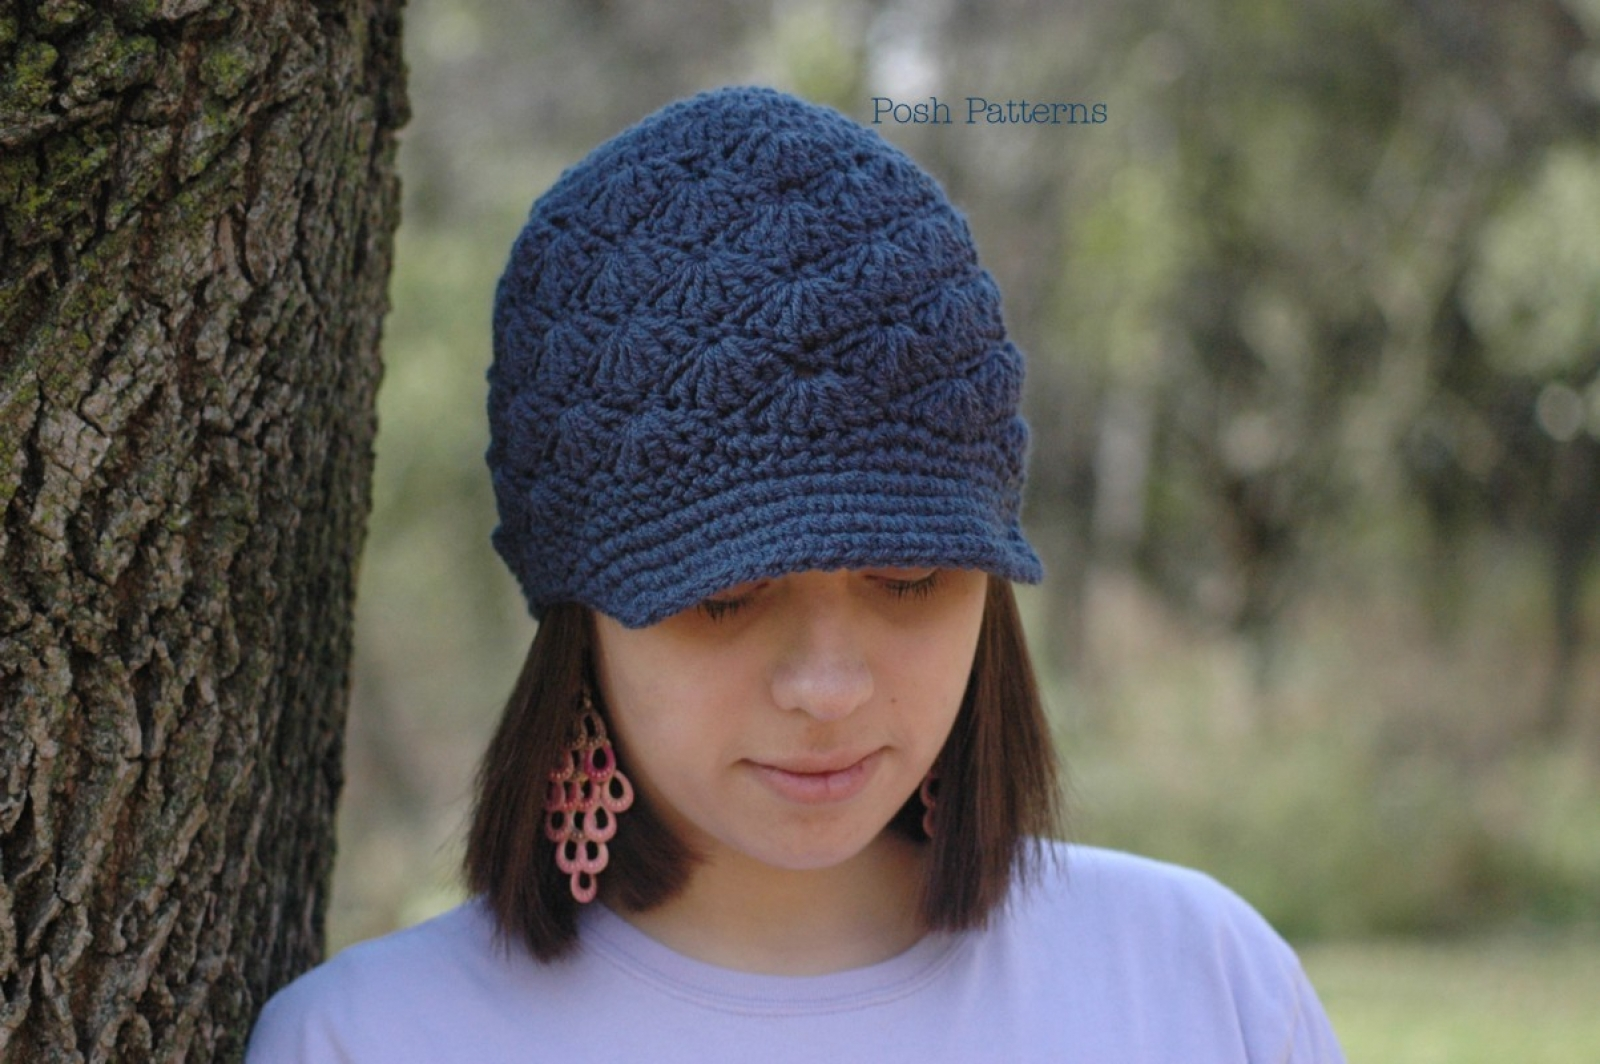 Crochet hat pattern flapper hat flower crochet pattern bankloansurffo Image collections